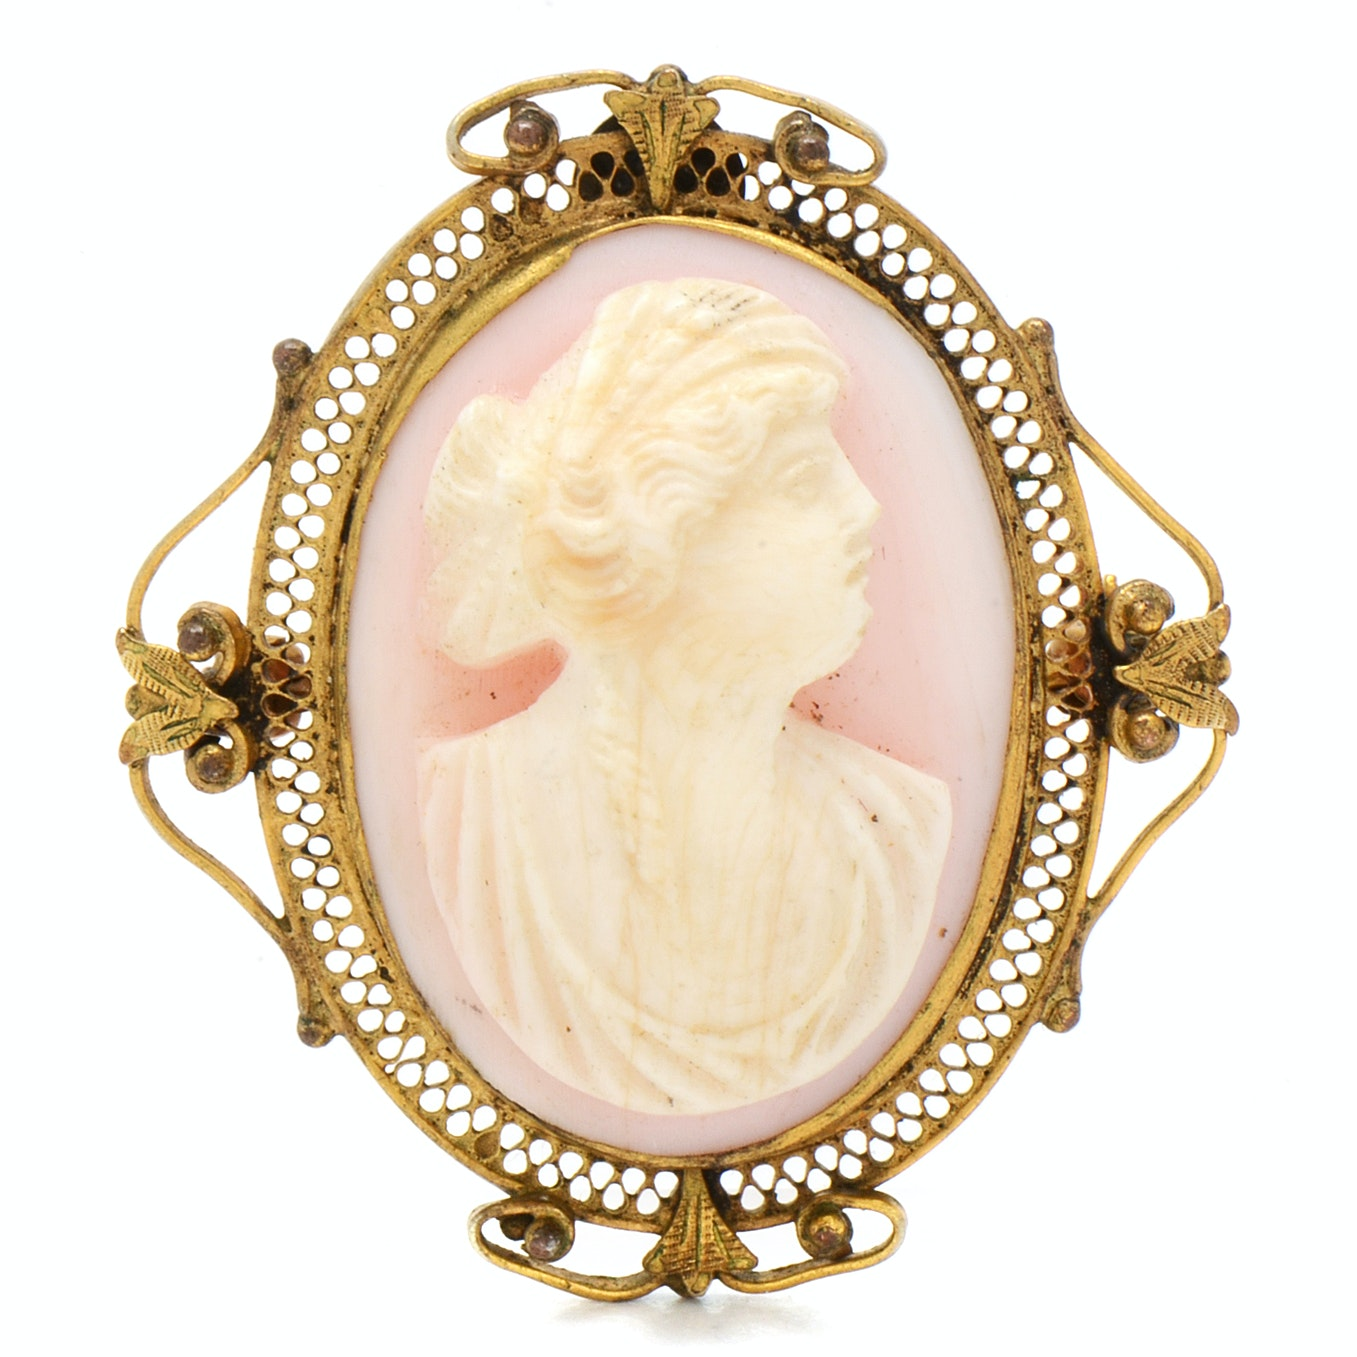 Vintage Carved Shell Cameo Brooch in Filigree Mount